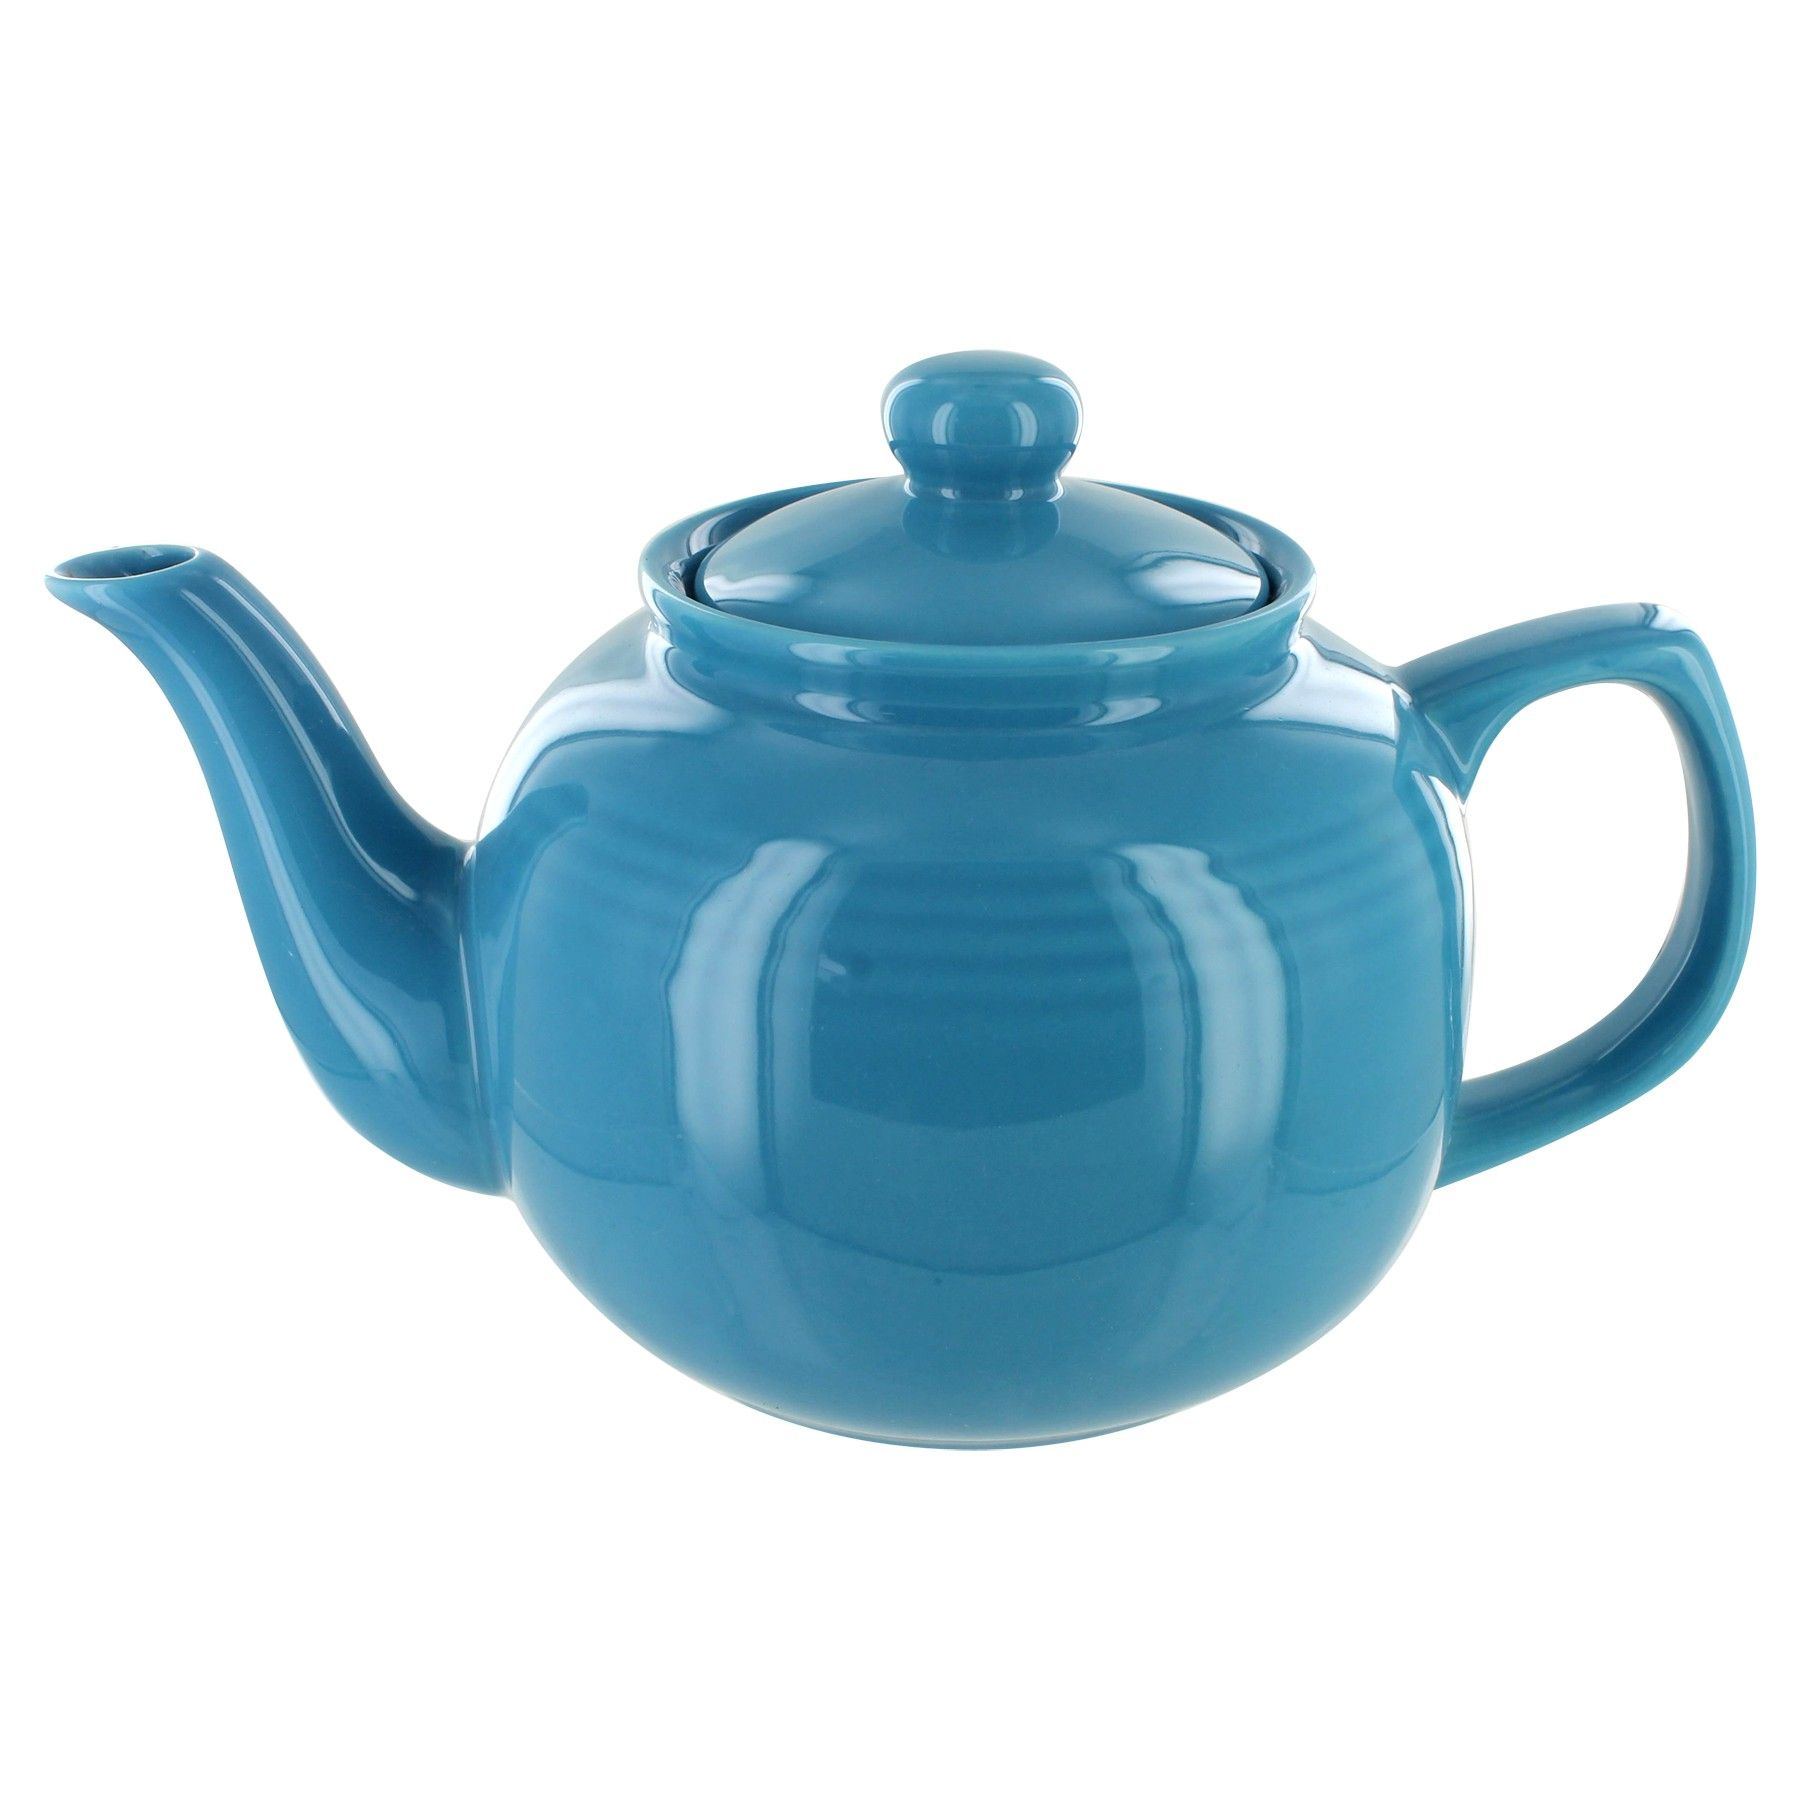 Red Gloss Finish English Tea Store 6 Cup Porcelain Teapot